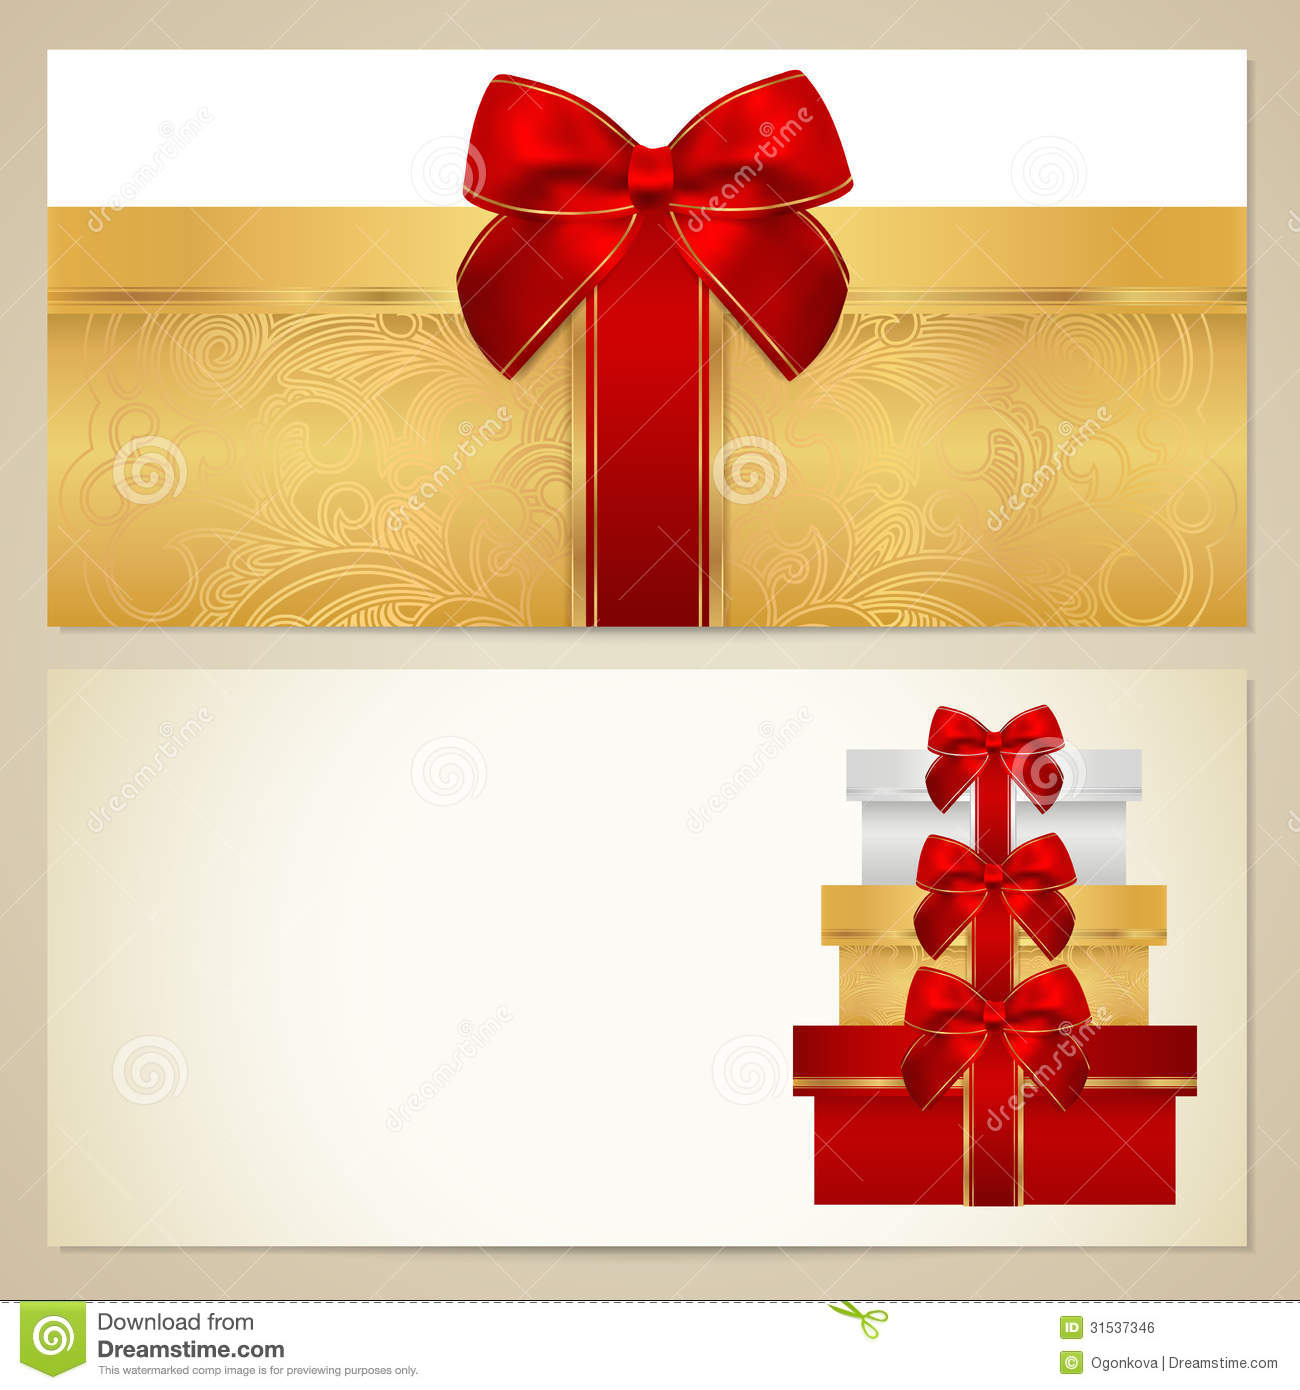 Voucher (Gift Certificate, Coupon) Template. Boxes Royalty Free Stock ...